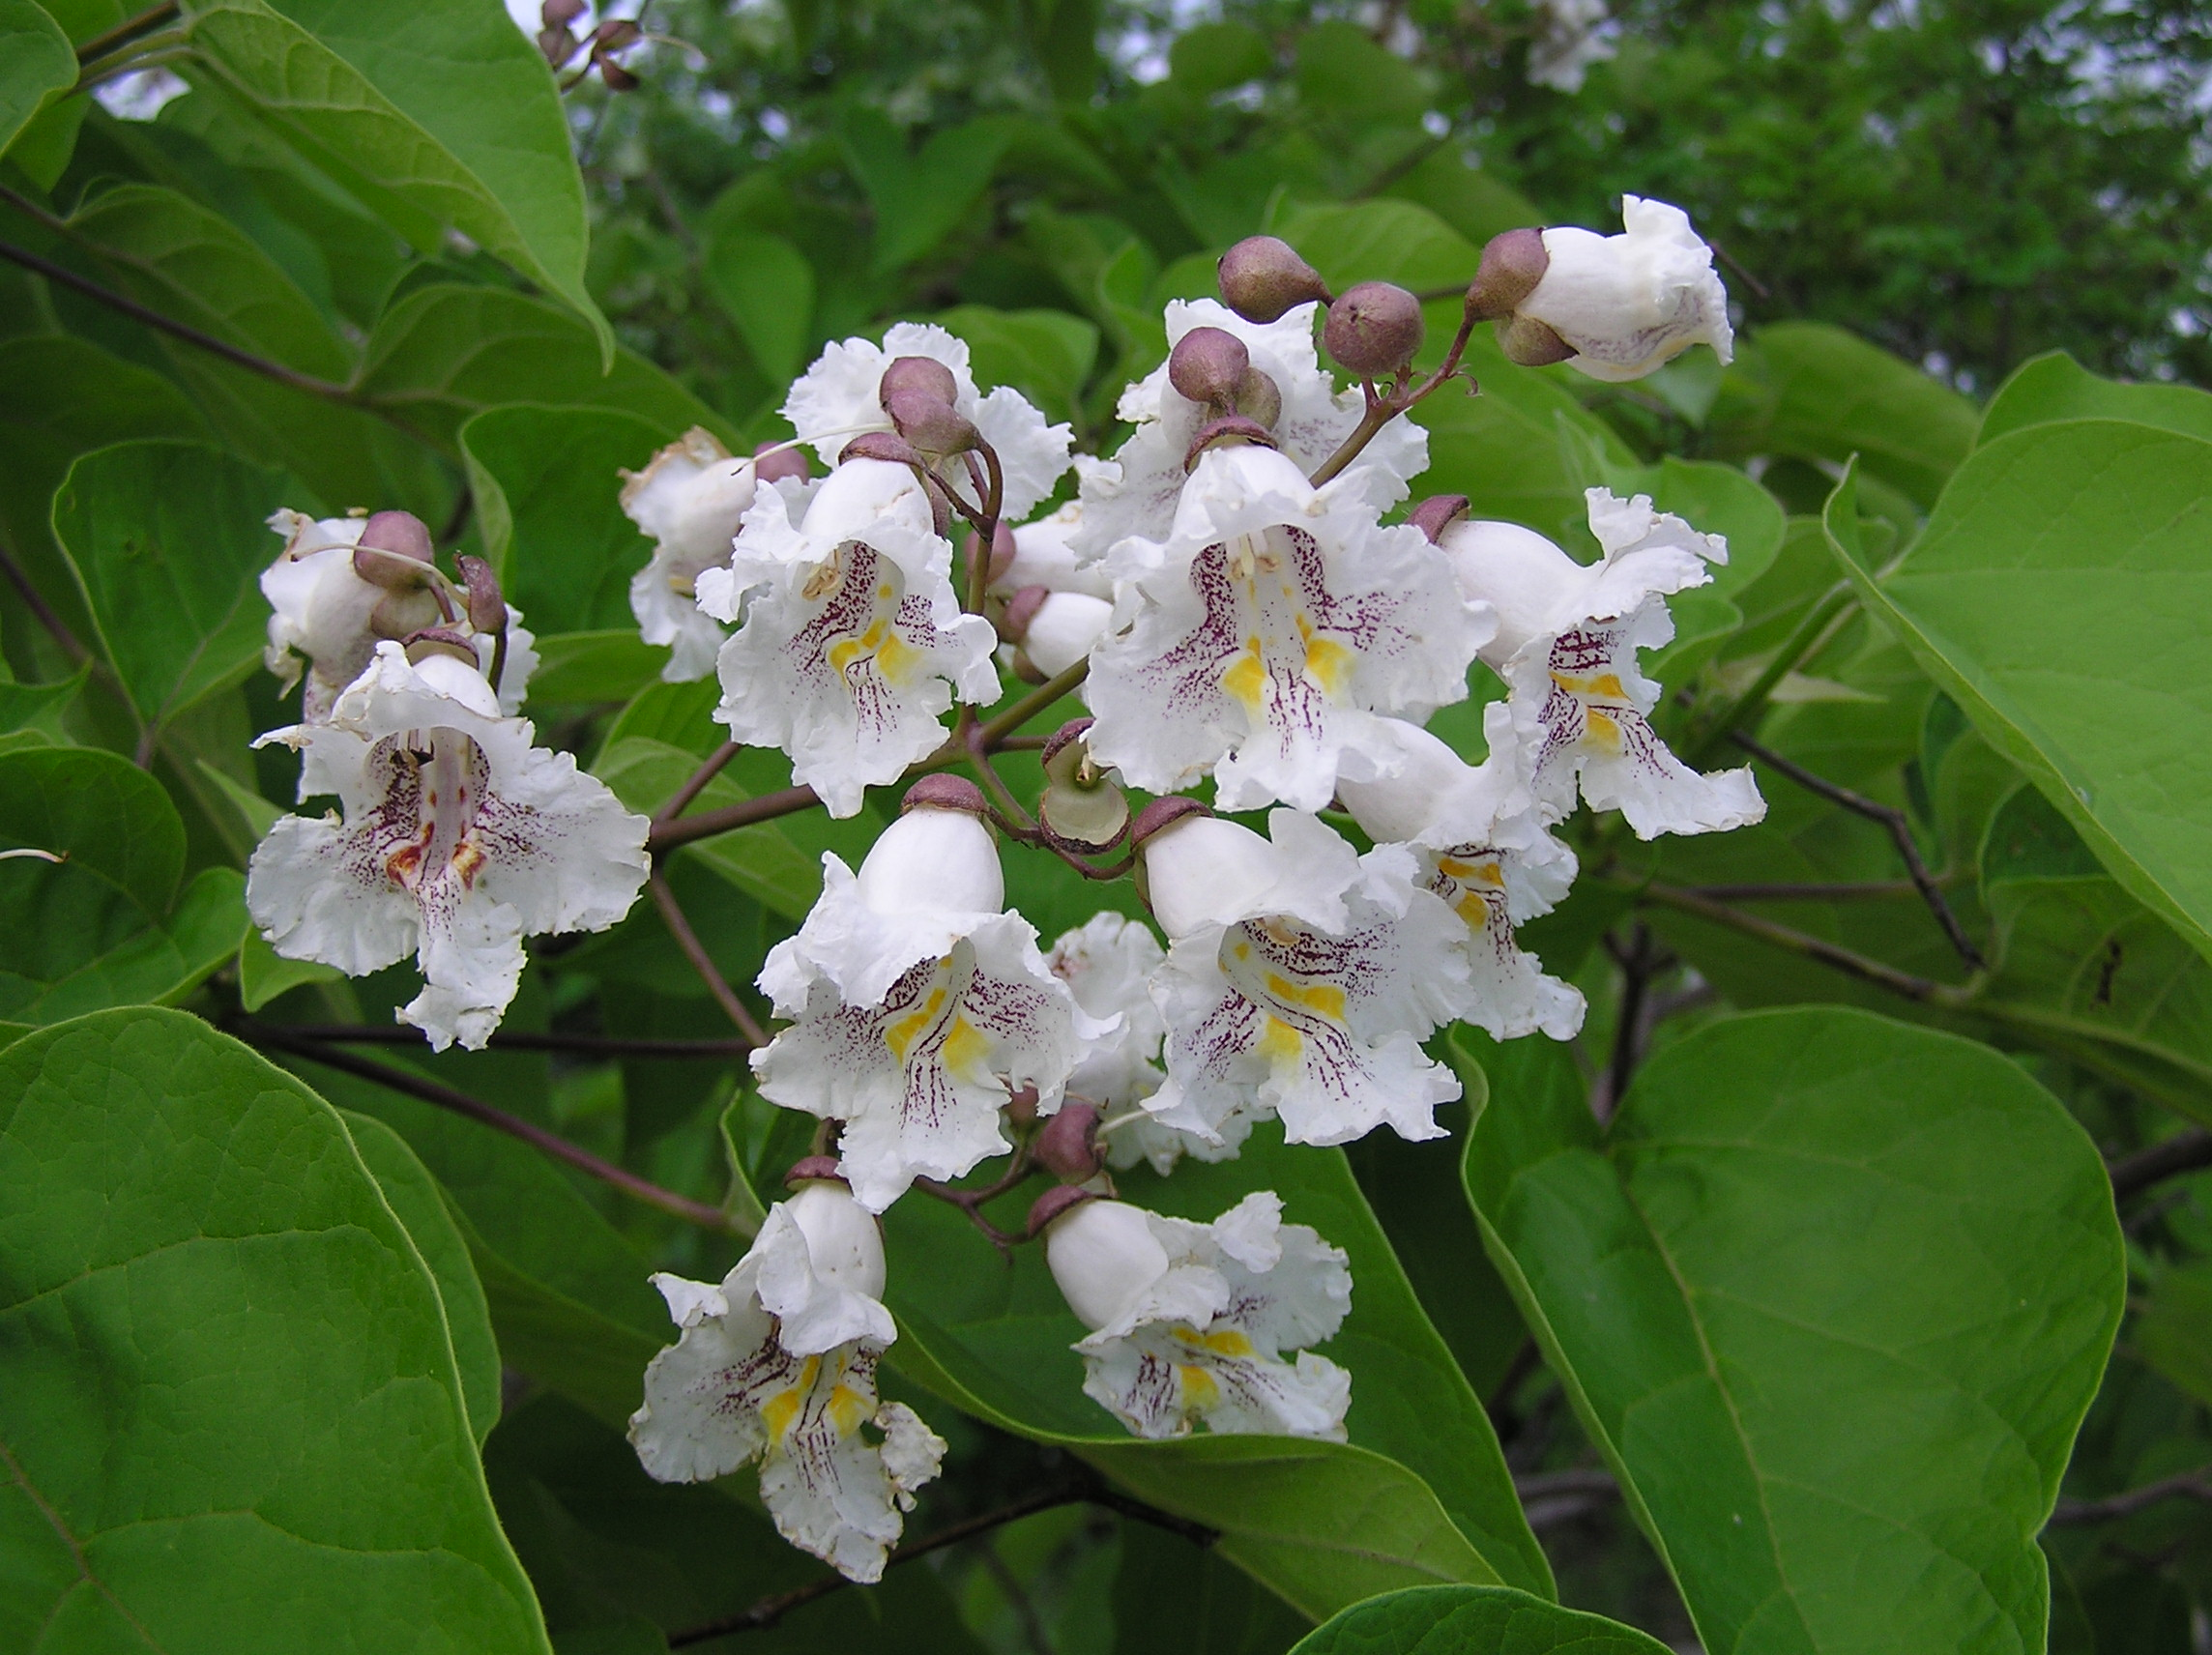 Catalpa nectar has been shown to deter some ants and butterflies but not large bees.